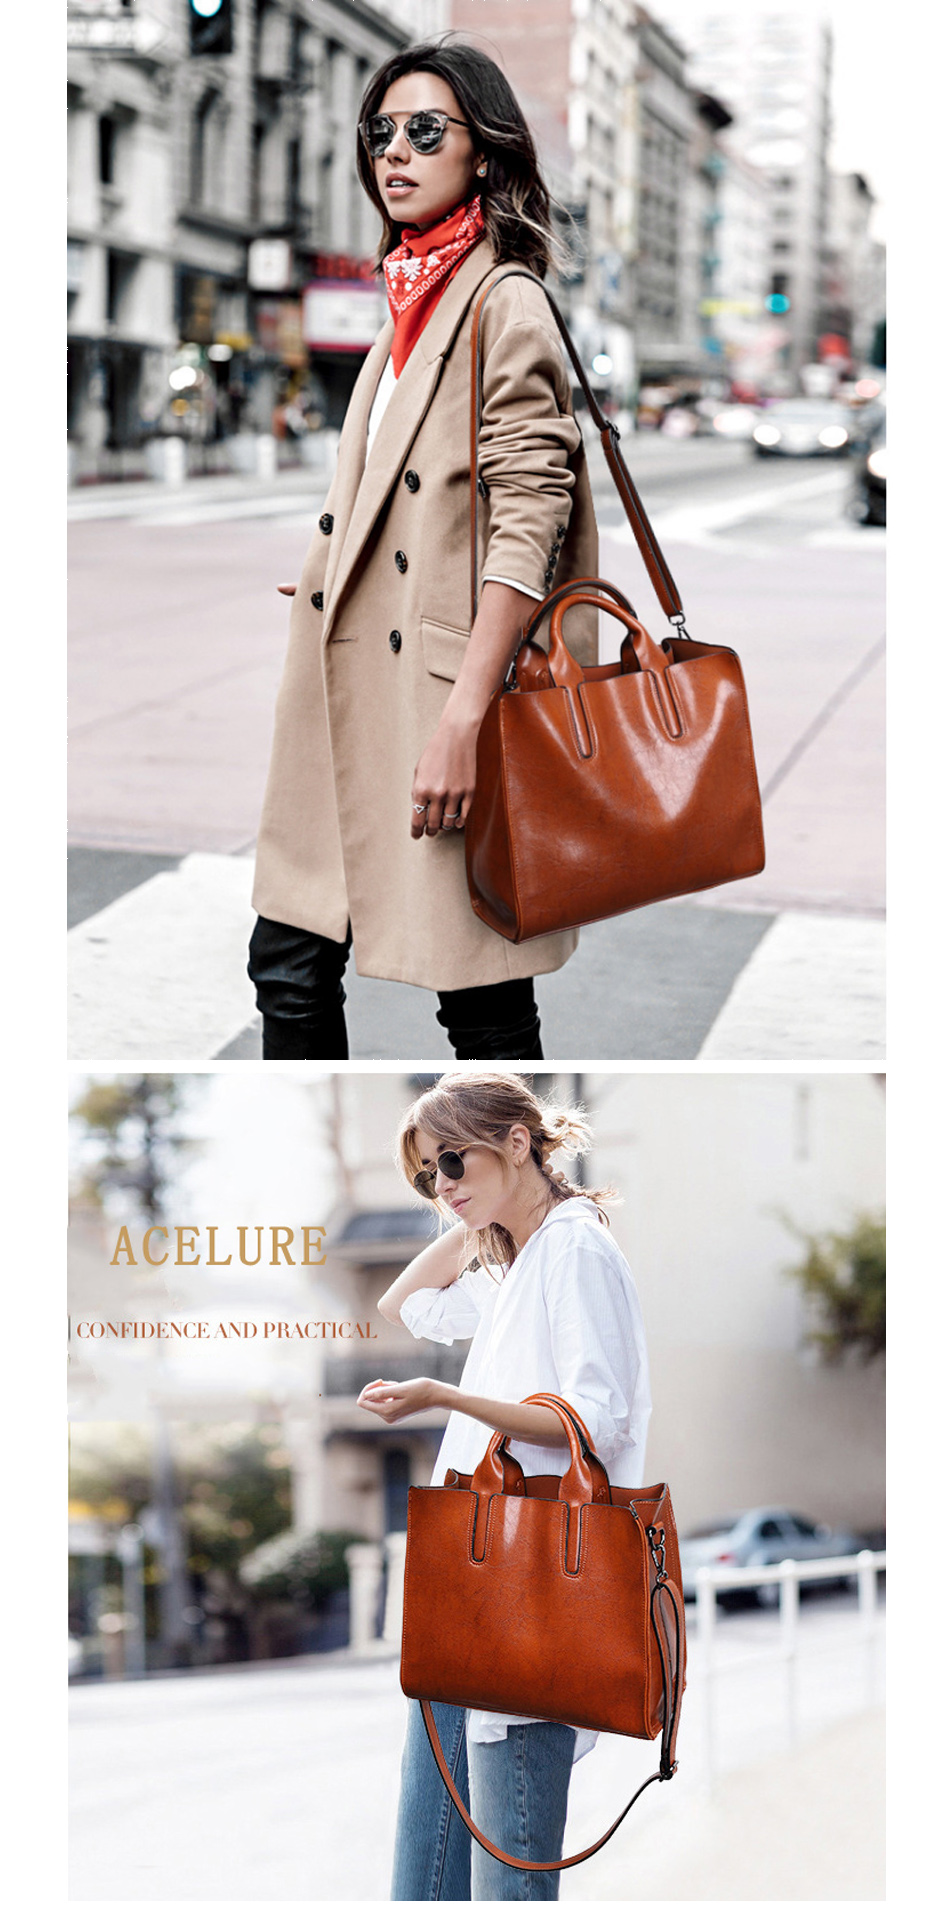 Women's Pure Tote Leather Handbag By Acelure 1